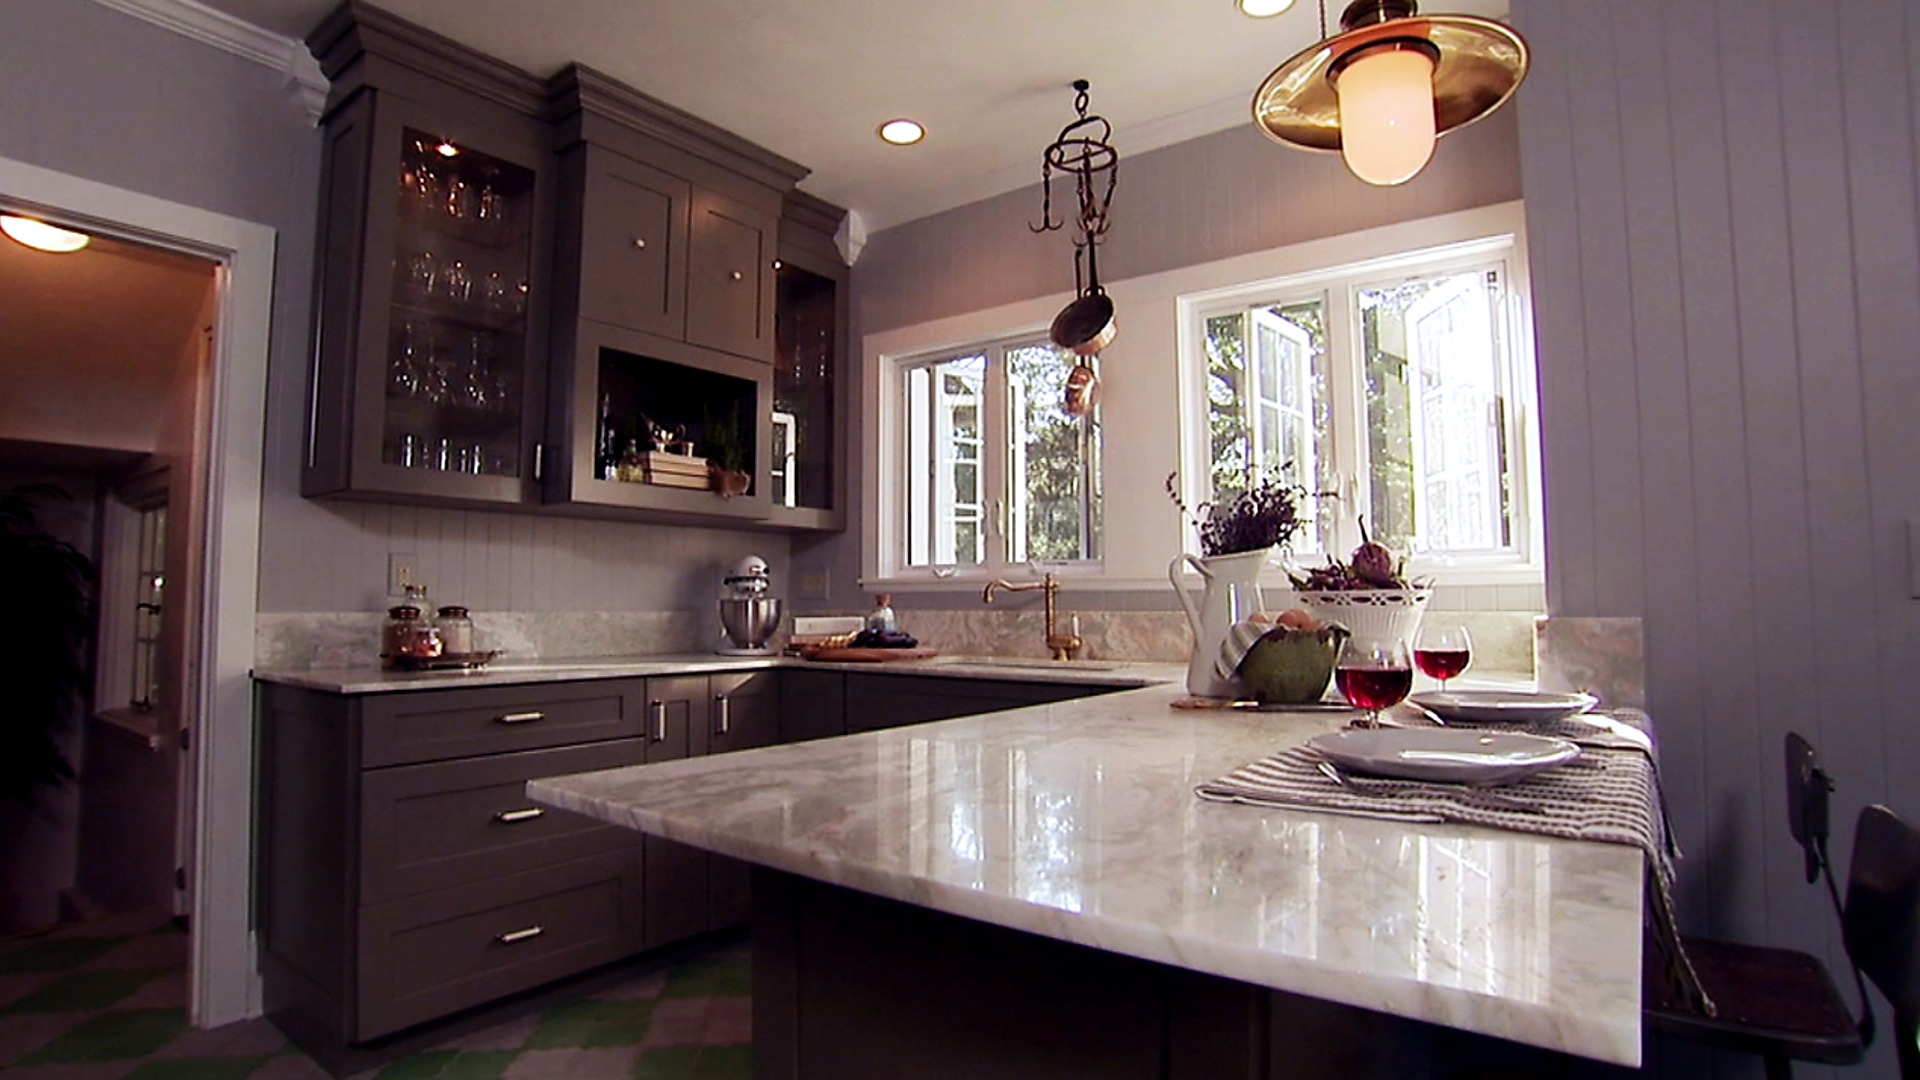 Kitchen Kitchen Color Ideas Exquisite On Regarding Trends Hgtv 2 Kitchen Color Ideas Wonderful On Regarding Best Colors To Paint A Pictures From Hgtv 17 Kitchen Color Ideas Perfect On Inside 14